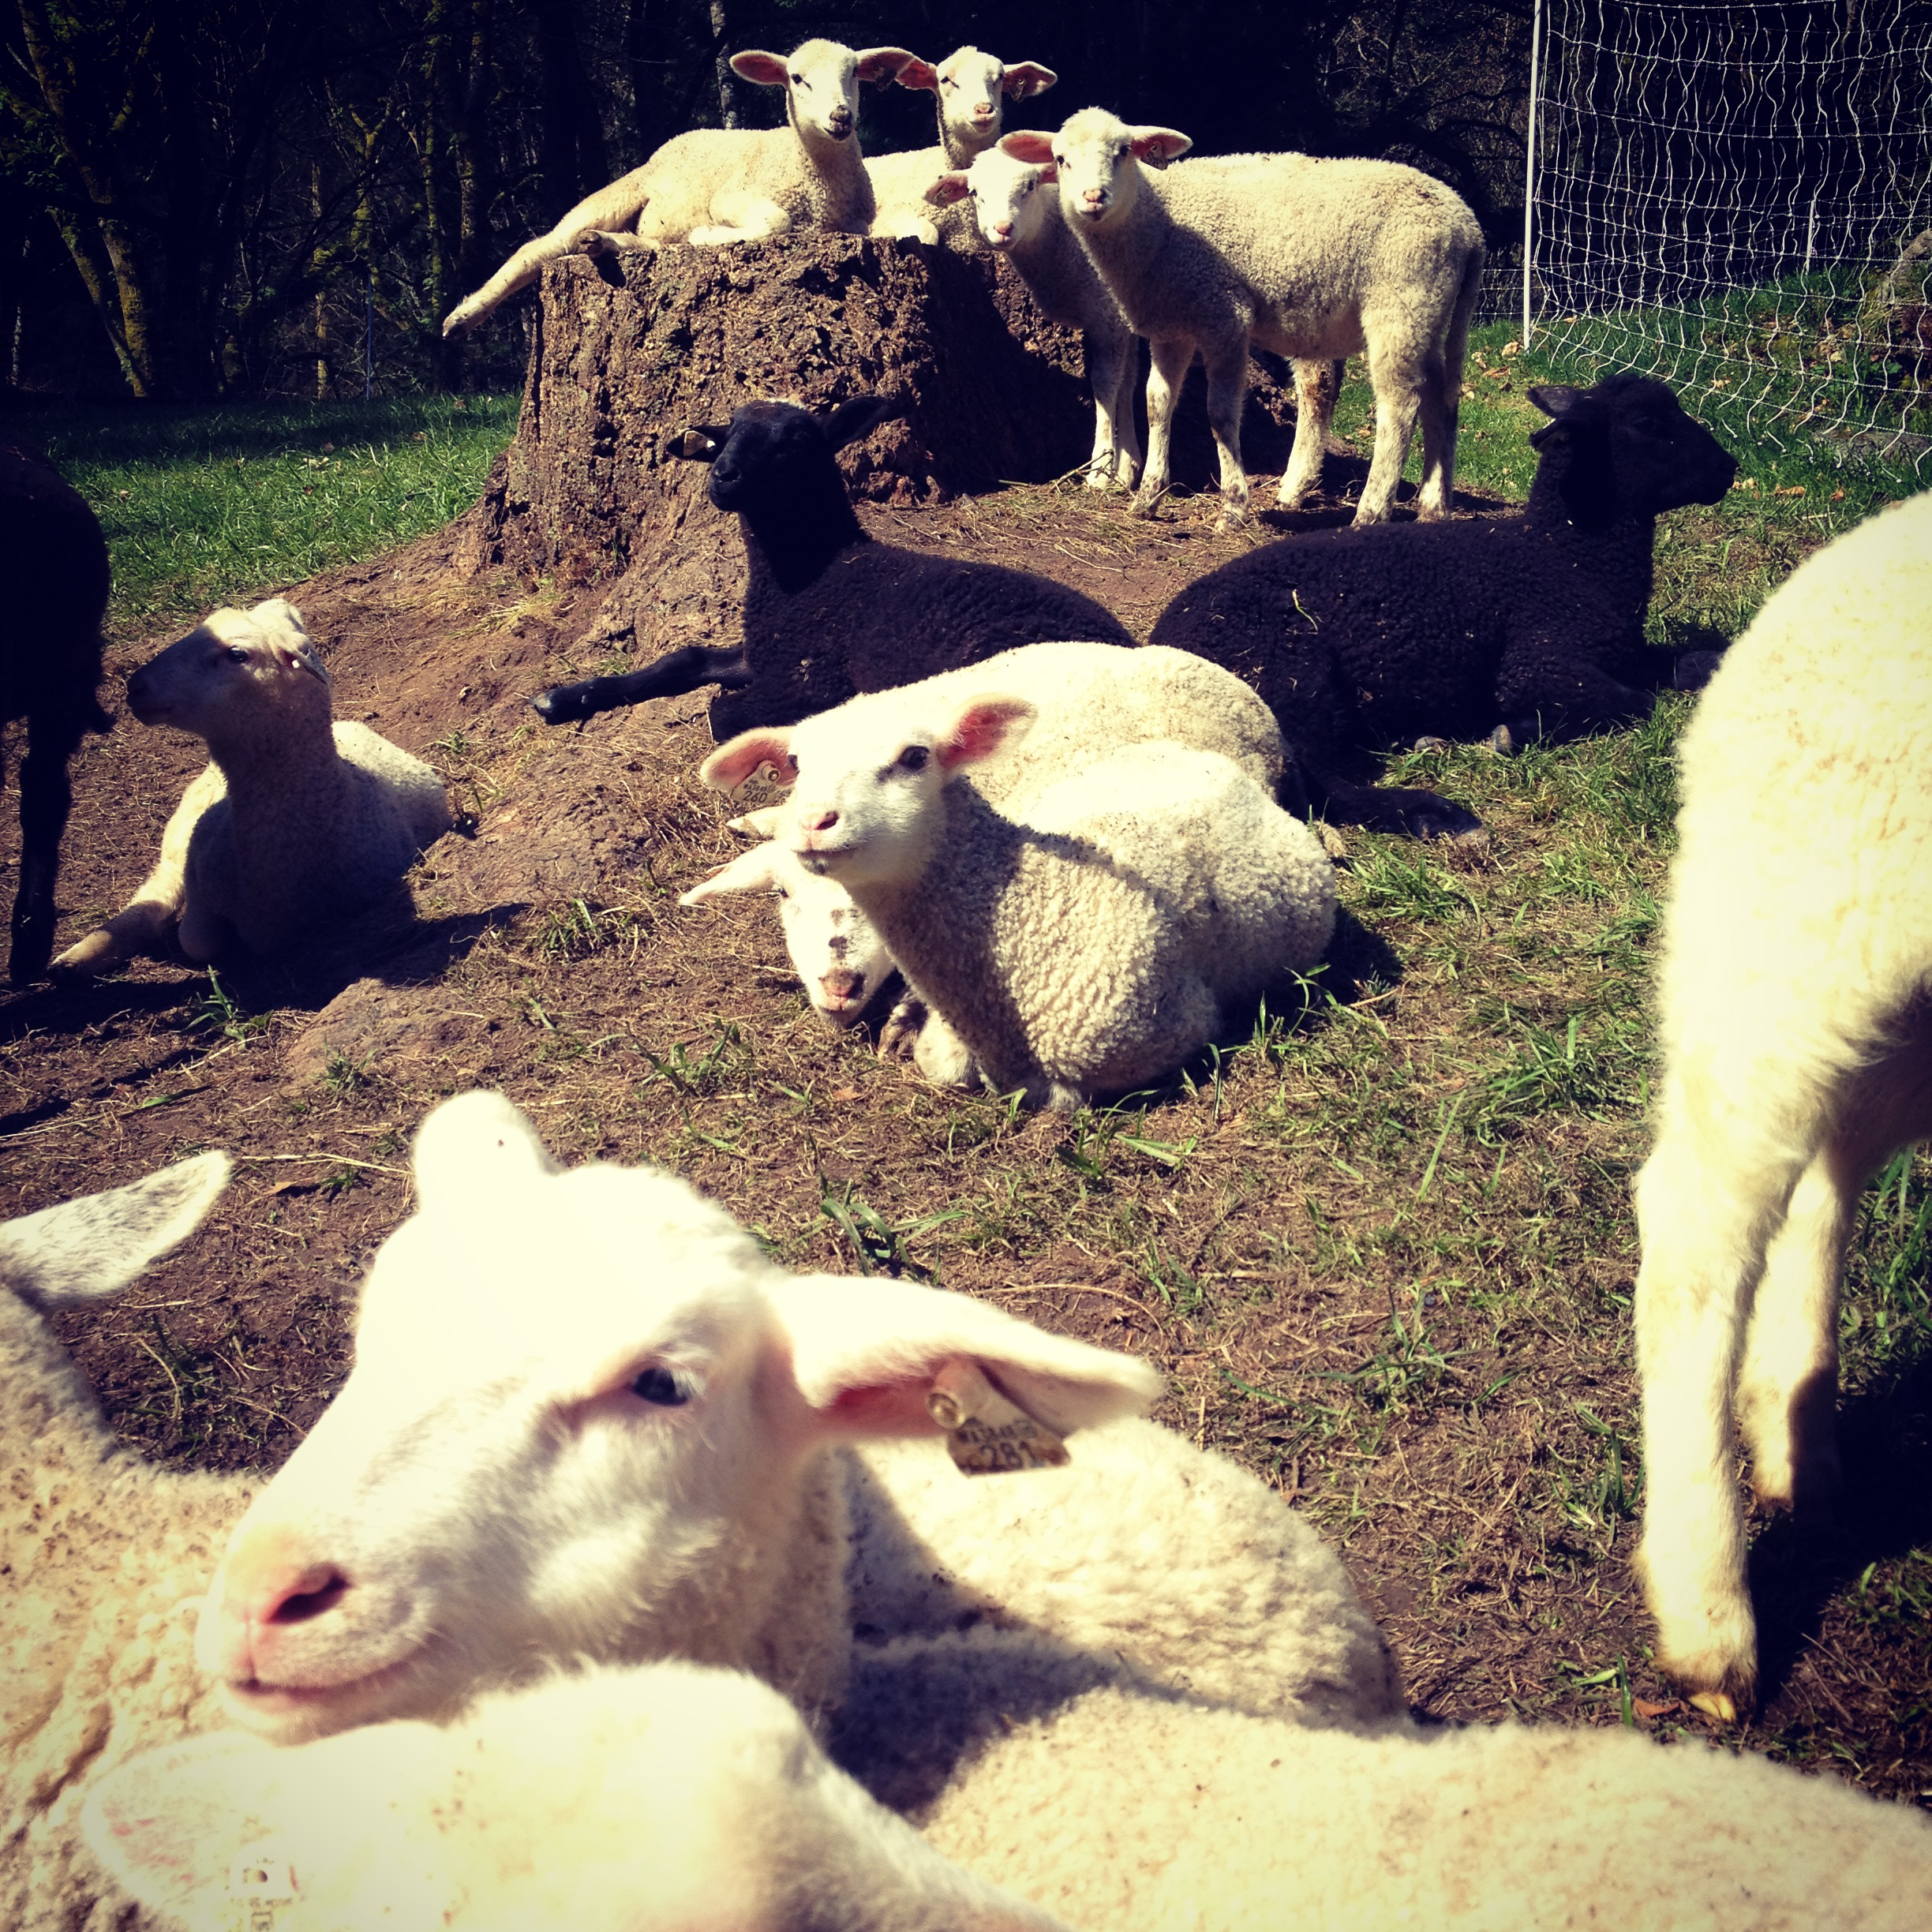 Glendale Shepherd's baby lambs born January and February 2015